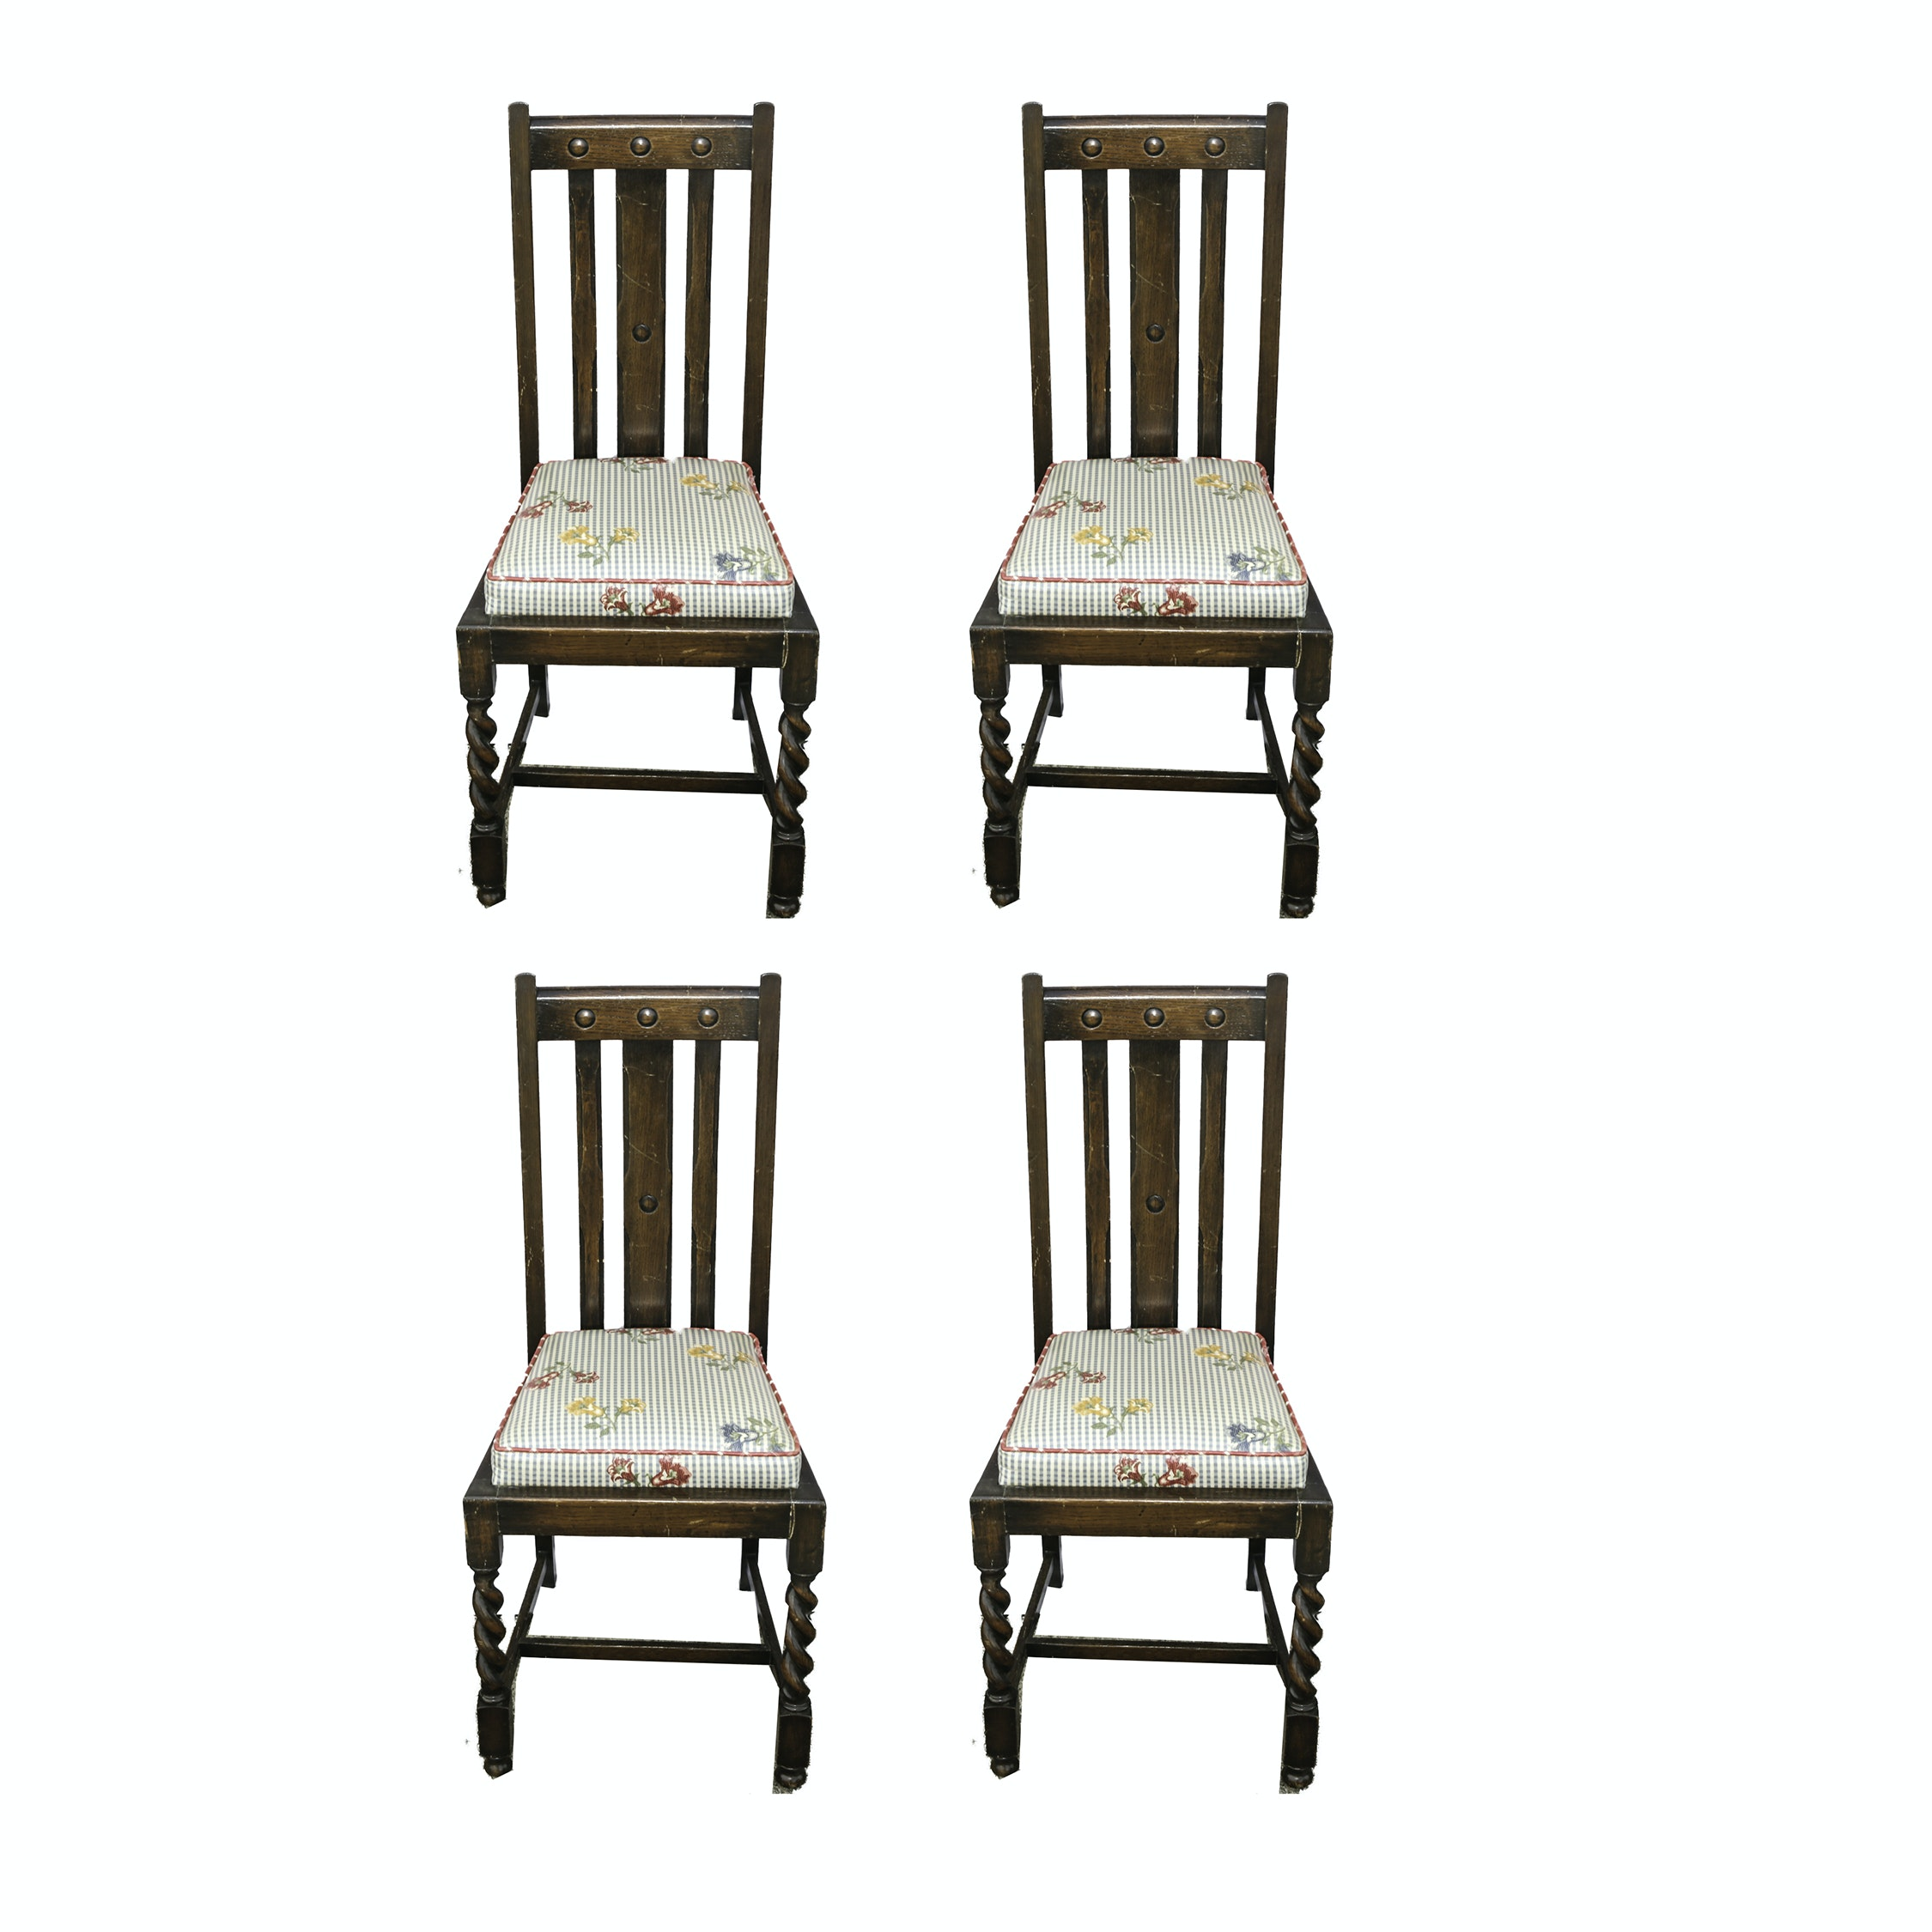 Set of English Arts and Crafts Style Dining Chairs